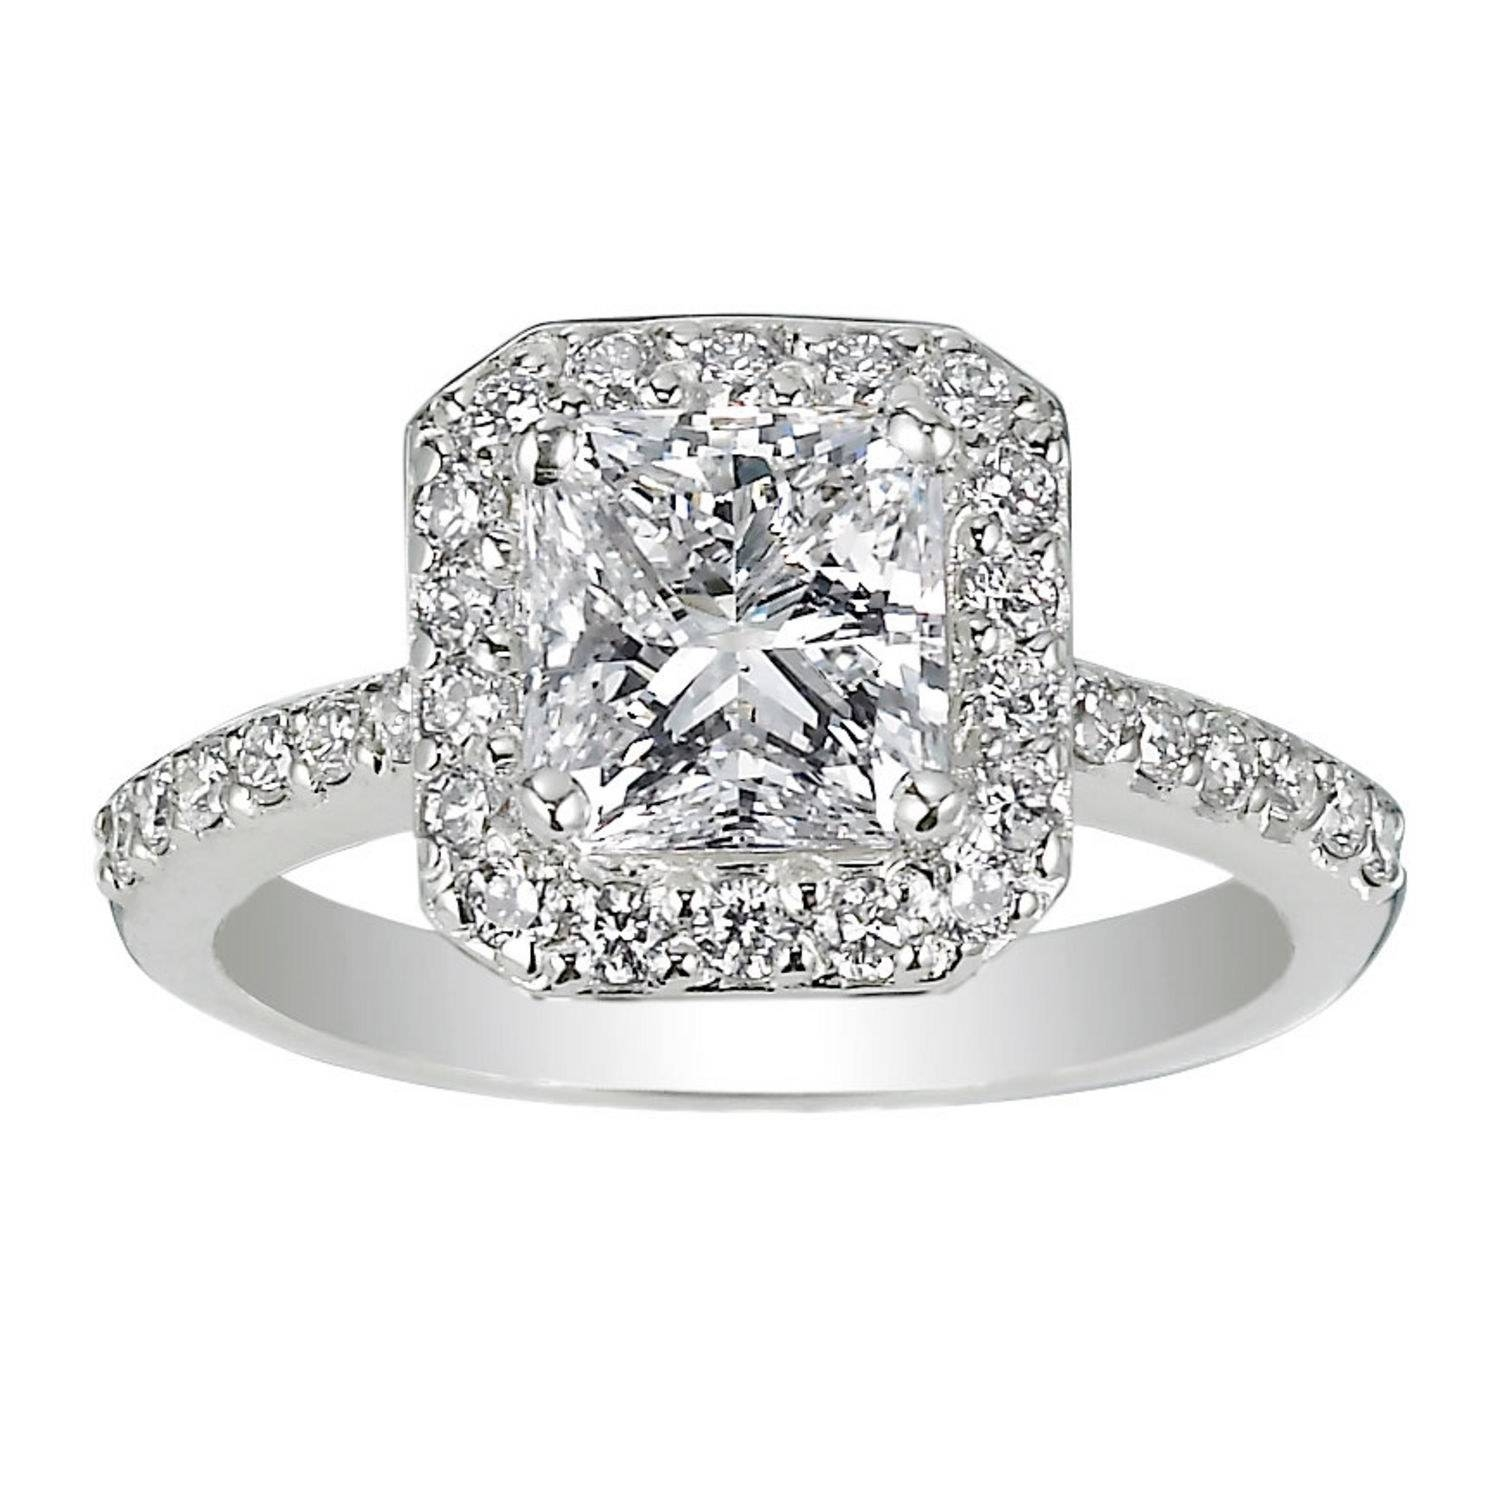 62 Diamond Engagement Rings Under $5,000 | Glamour Inside Diamonds Engagement Rings (View 3 of 15)